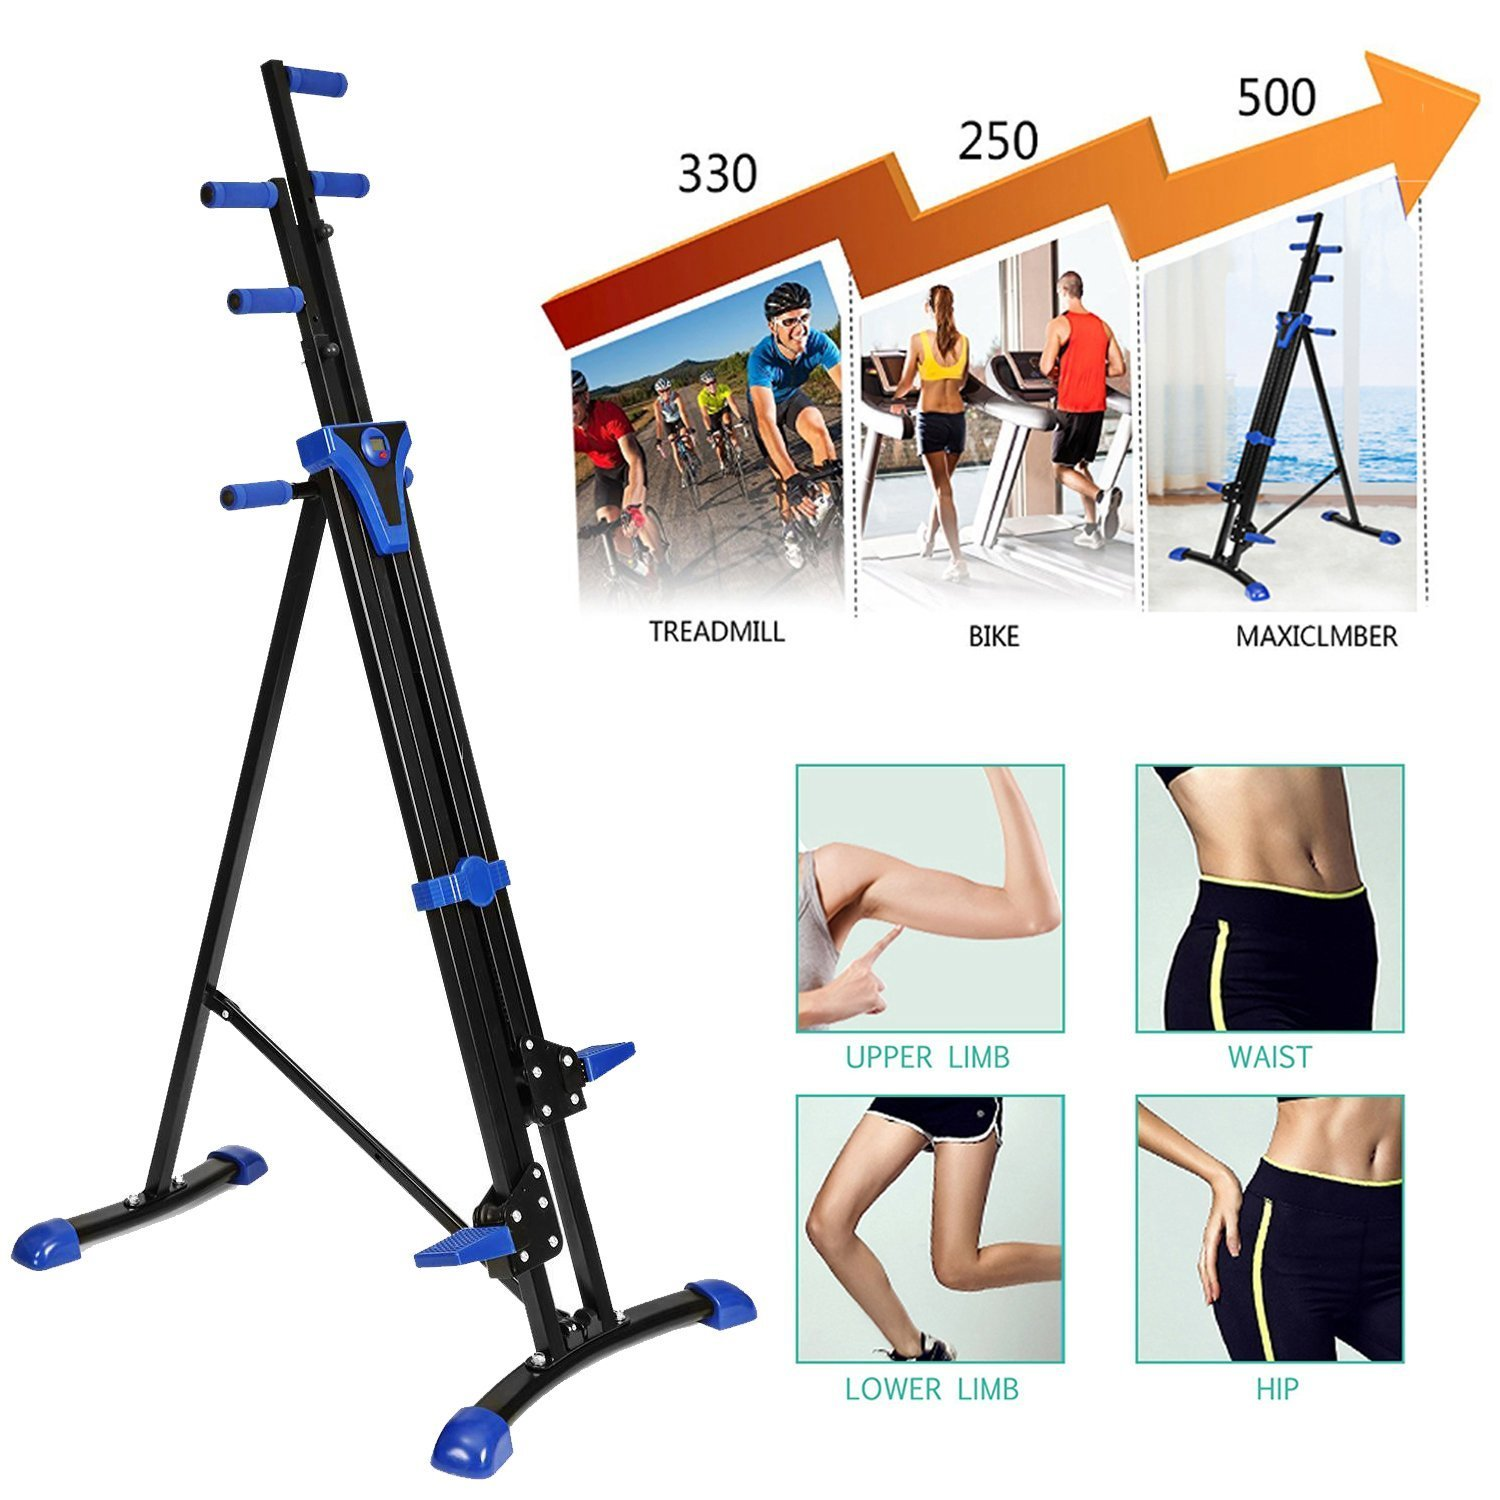 Kemanner Vertical Climber Folding Exercise Climbing Cardio Machine for Home Gym (US Stock) by Kemanner